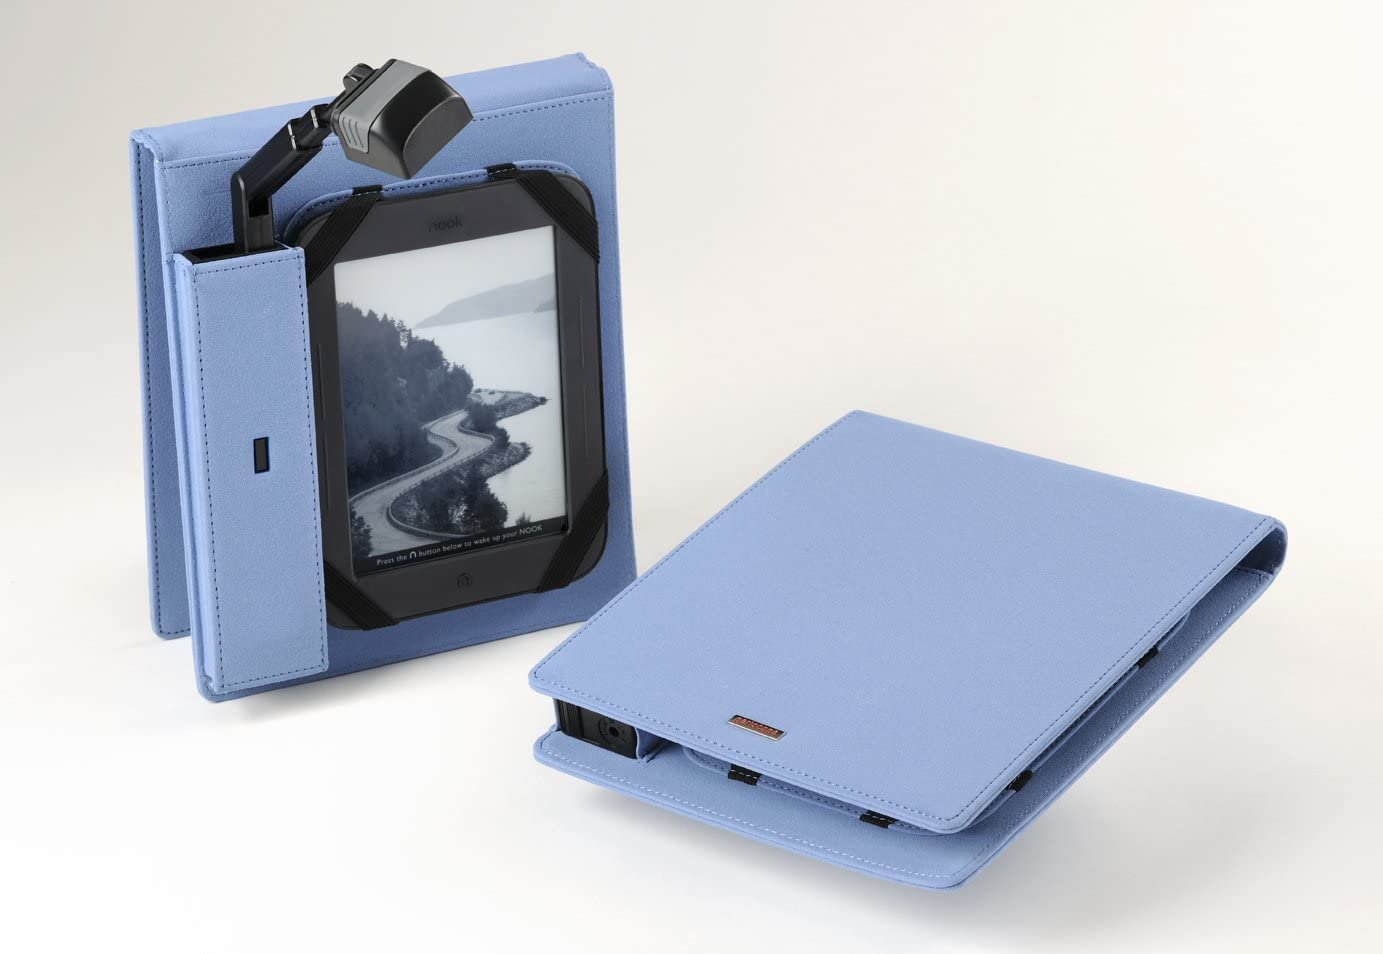 Periscope Max 58% OFF Flip Cover+Light for Kindle Wi-Fi nook Touch 5% OFF